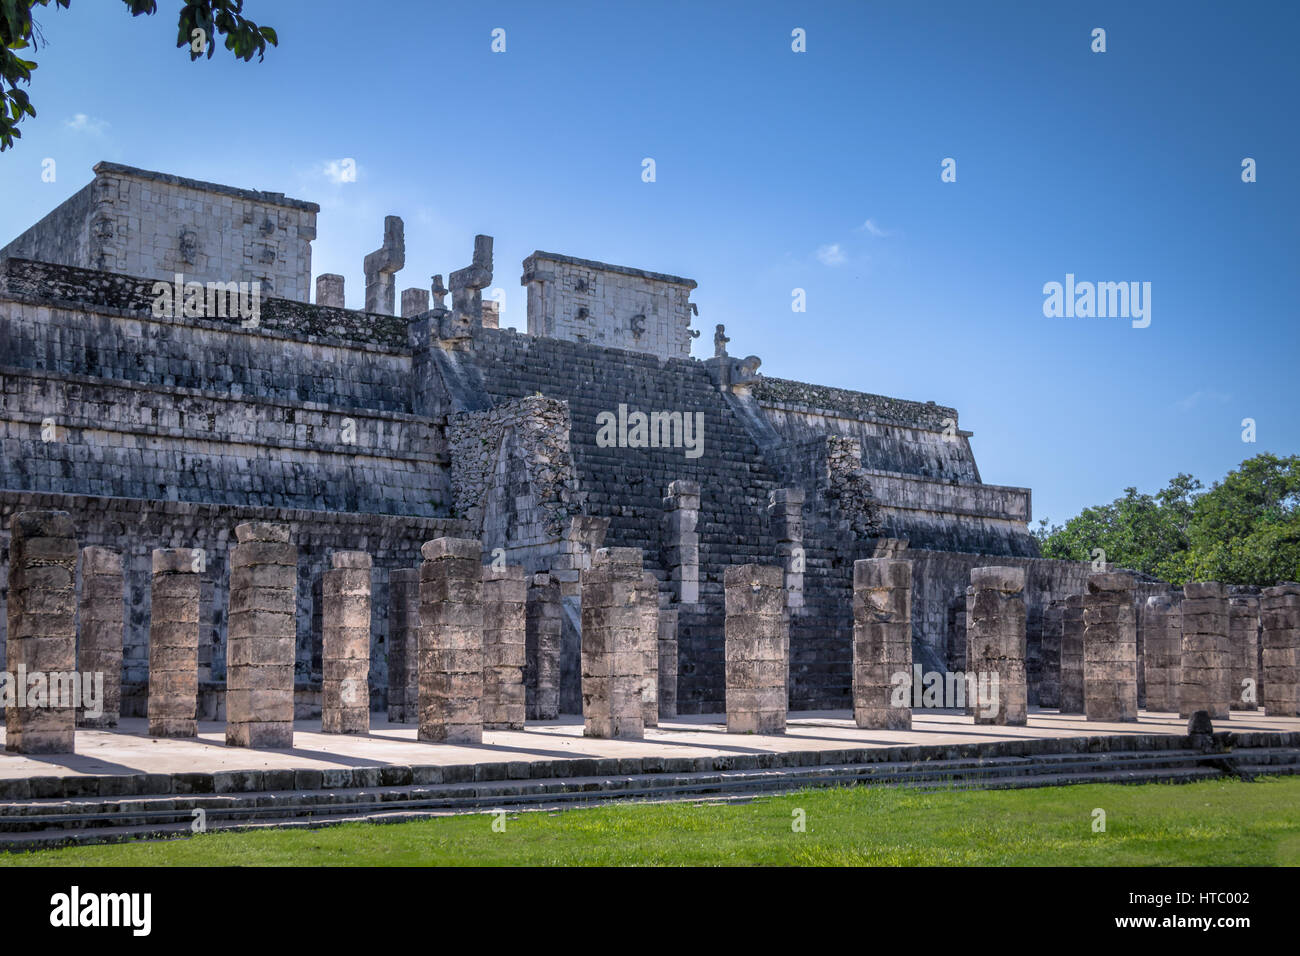 Carved columns at Mayan ruins of Temple of the Warriors in Chichen Itza - Yucatan, Mexico - Stock Image